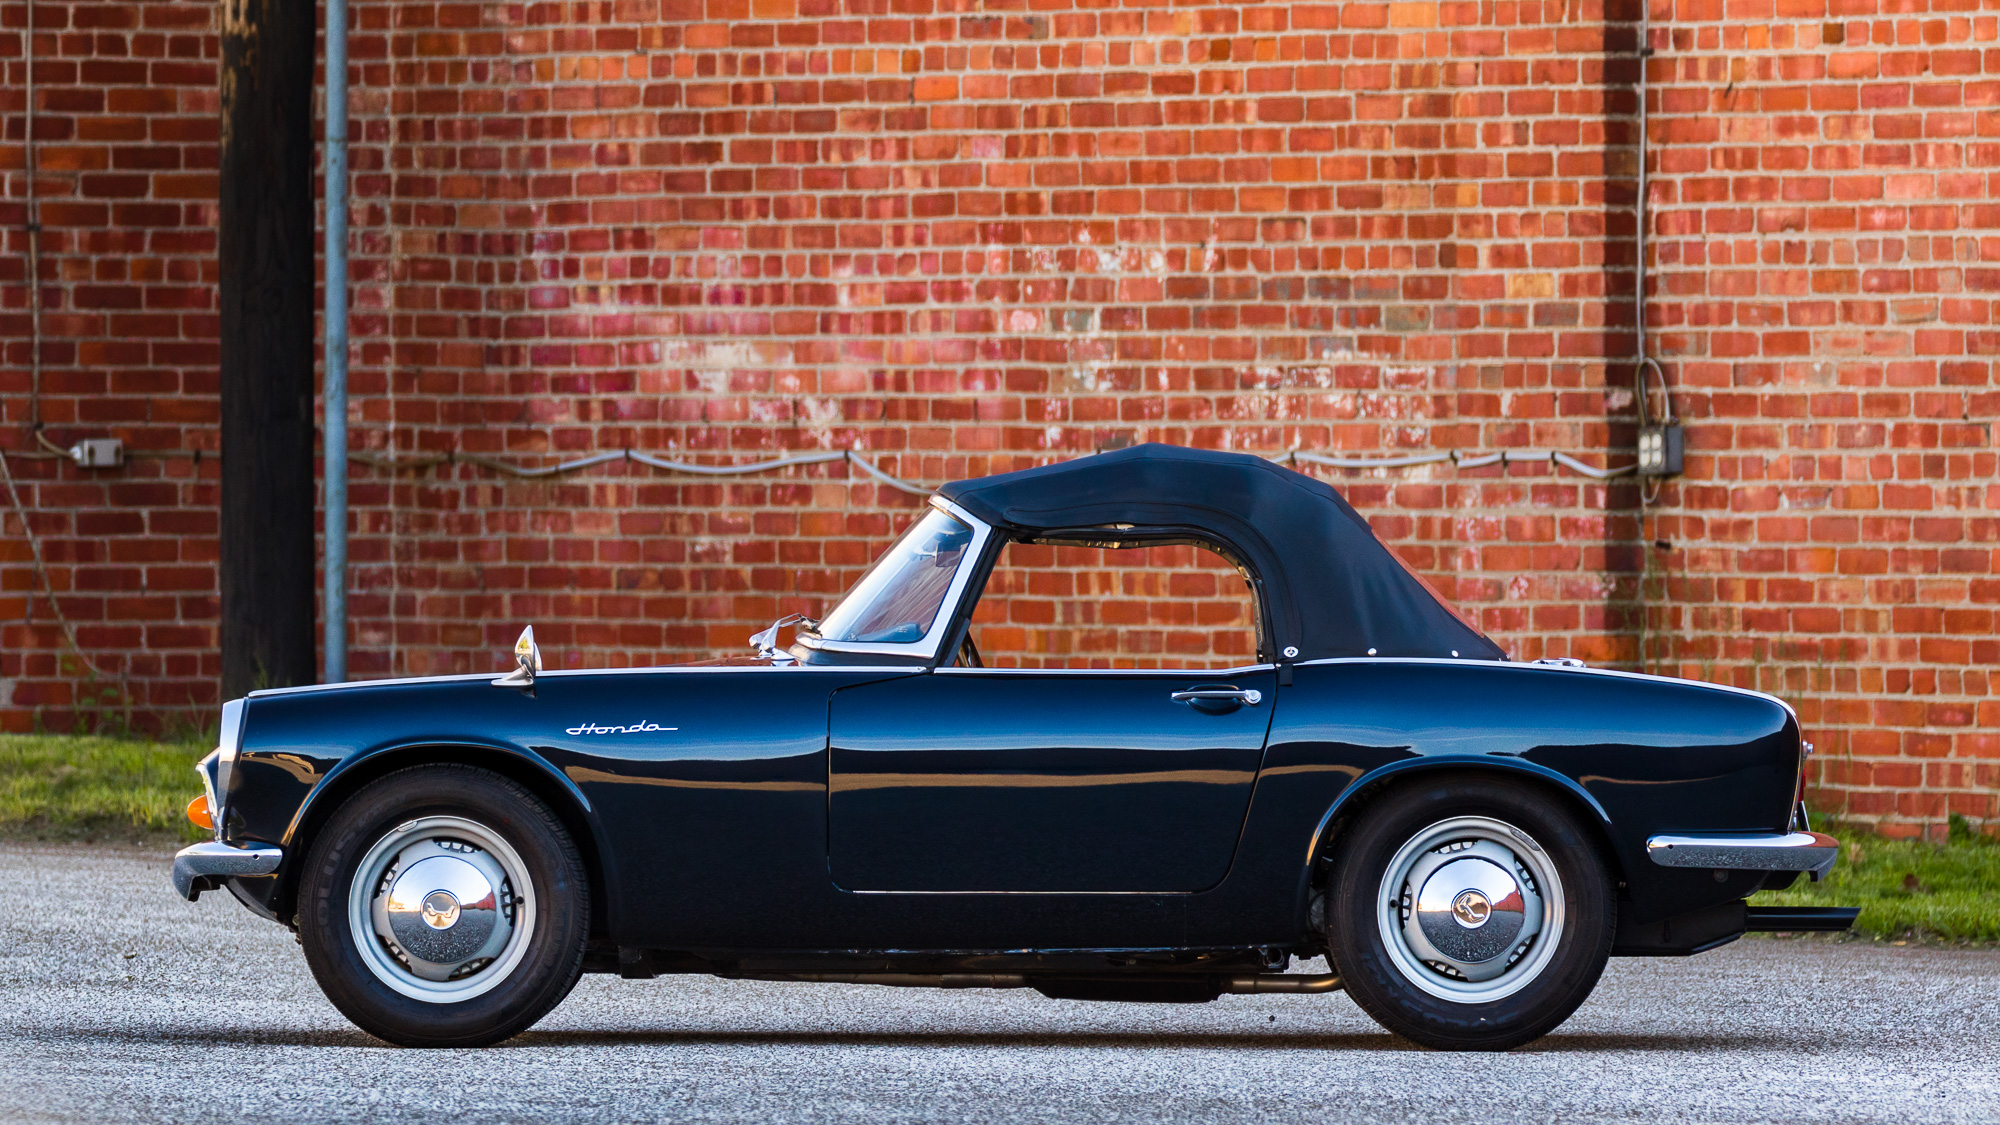 For Sale Mint Honda S600 With 40 000 Miles The Drive